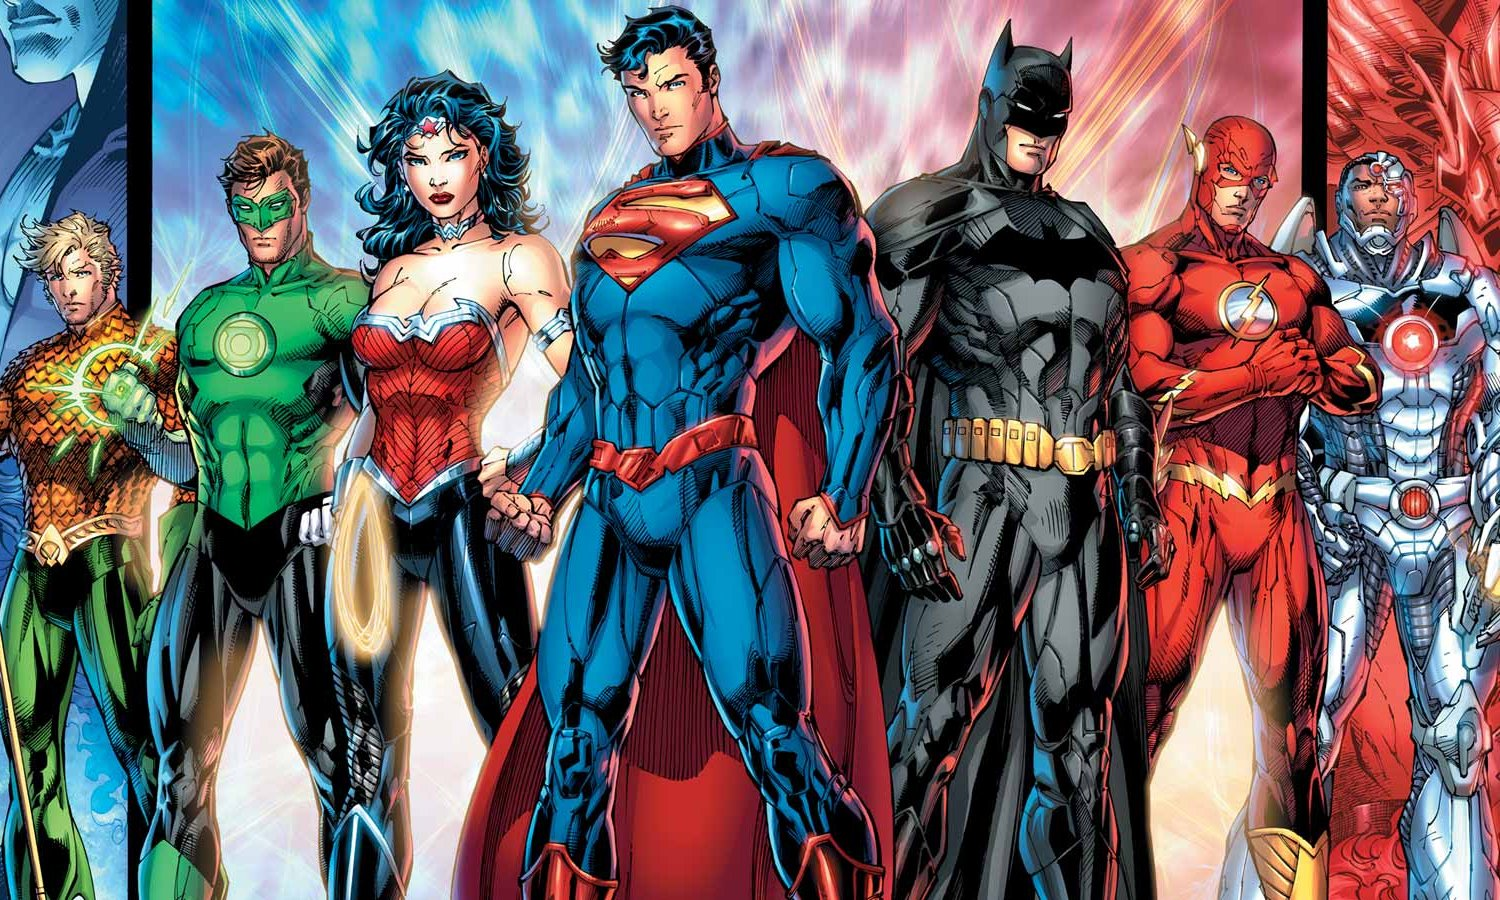 171: How To Fix Superman and the Justice League